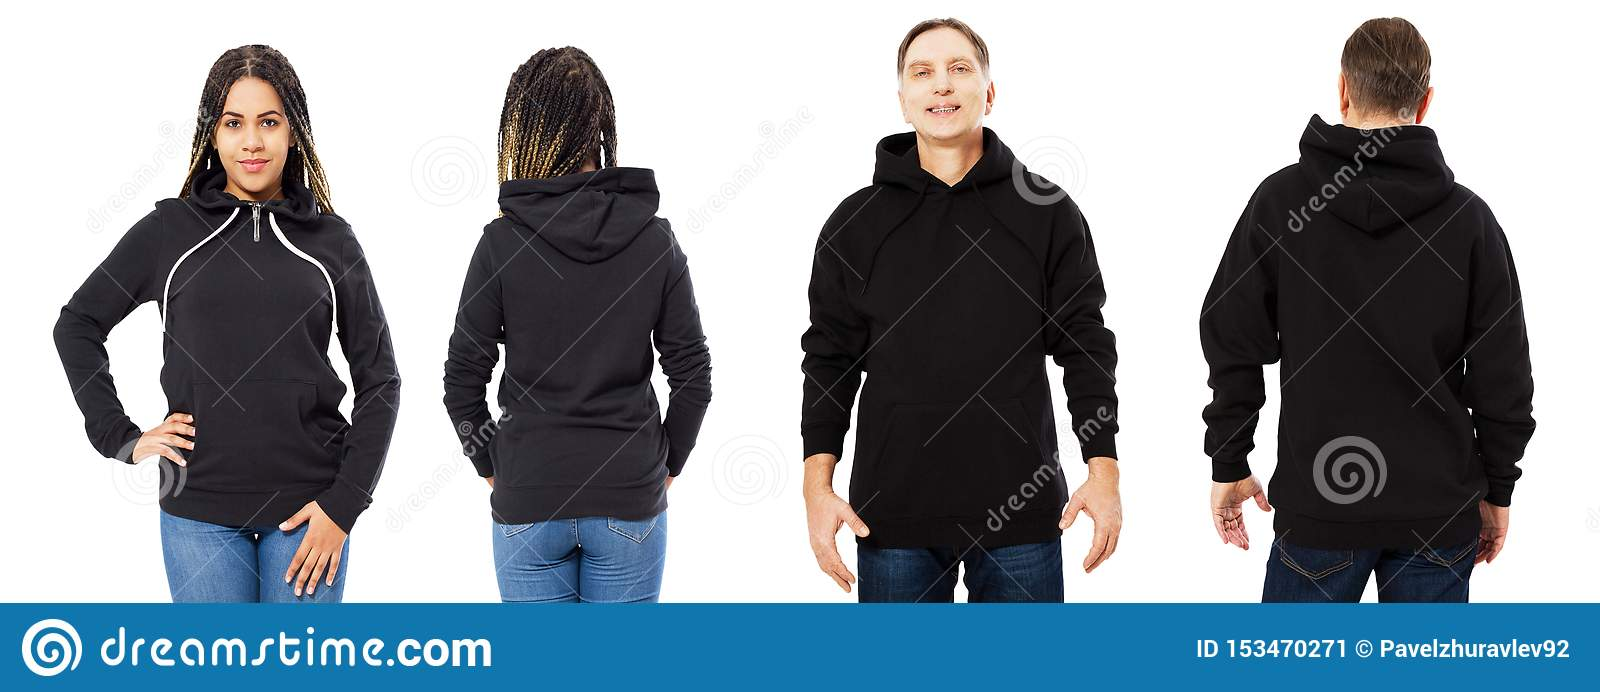 Black beautiful woman and middle-aged man in black hoodie mock up isolated over white background